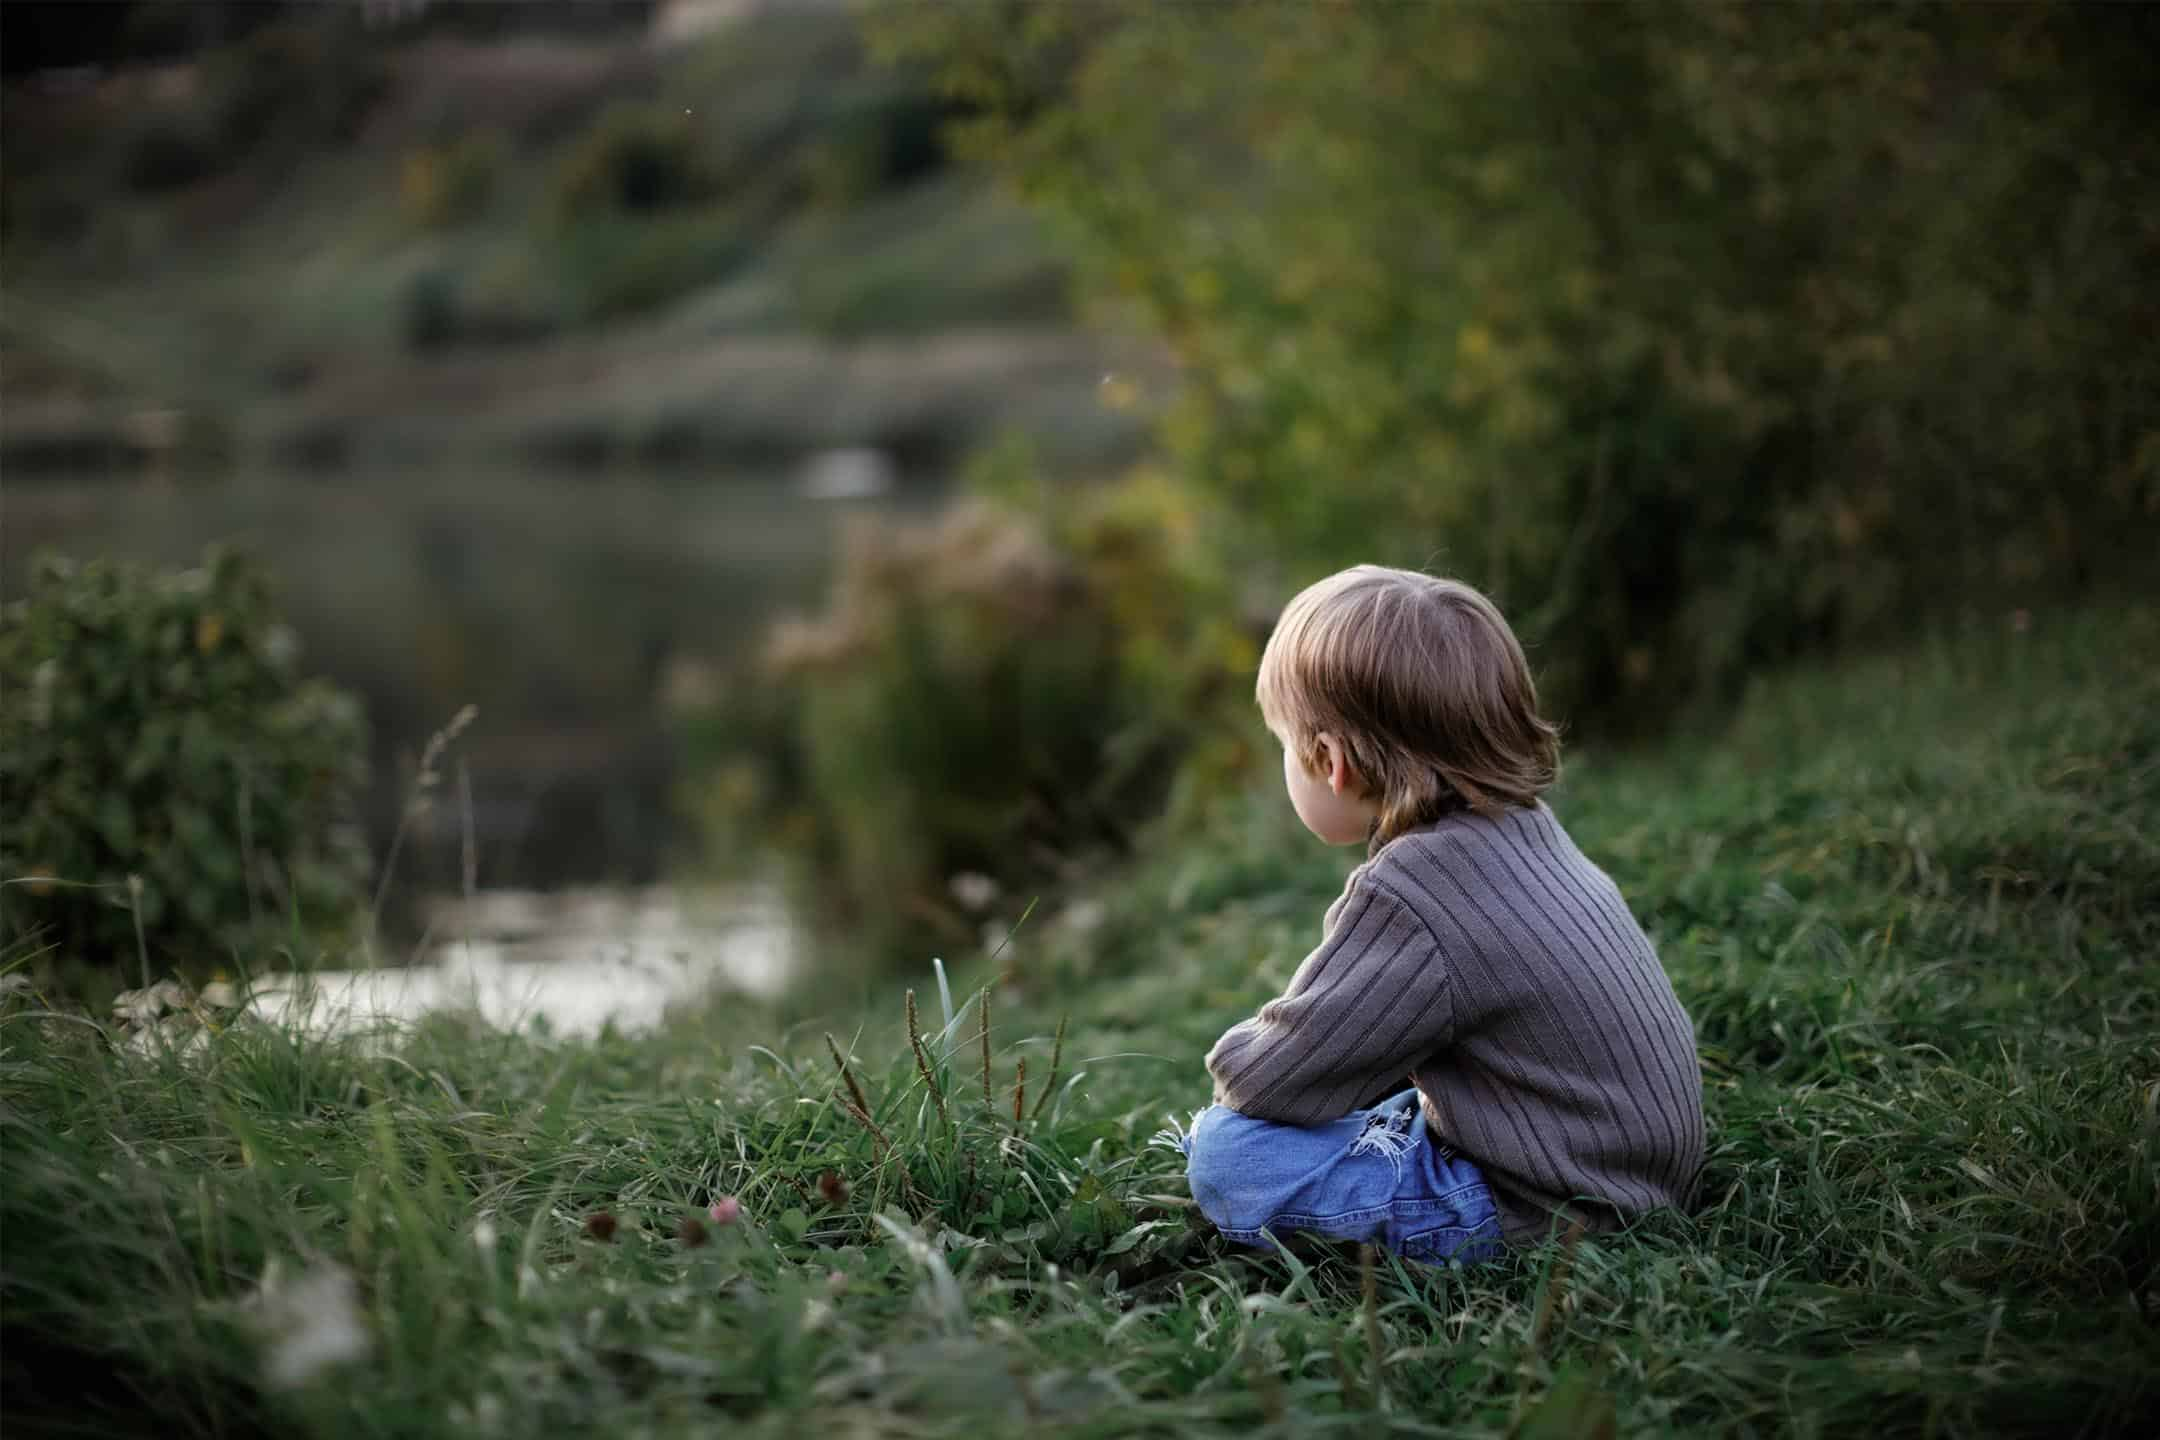 can i adopt a child in care proceedings